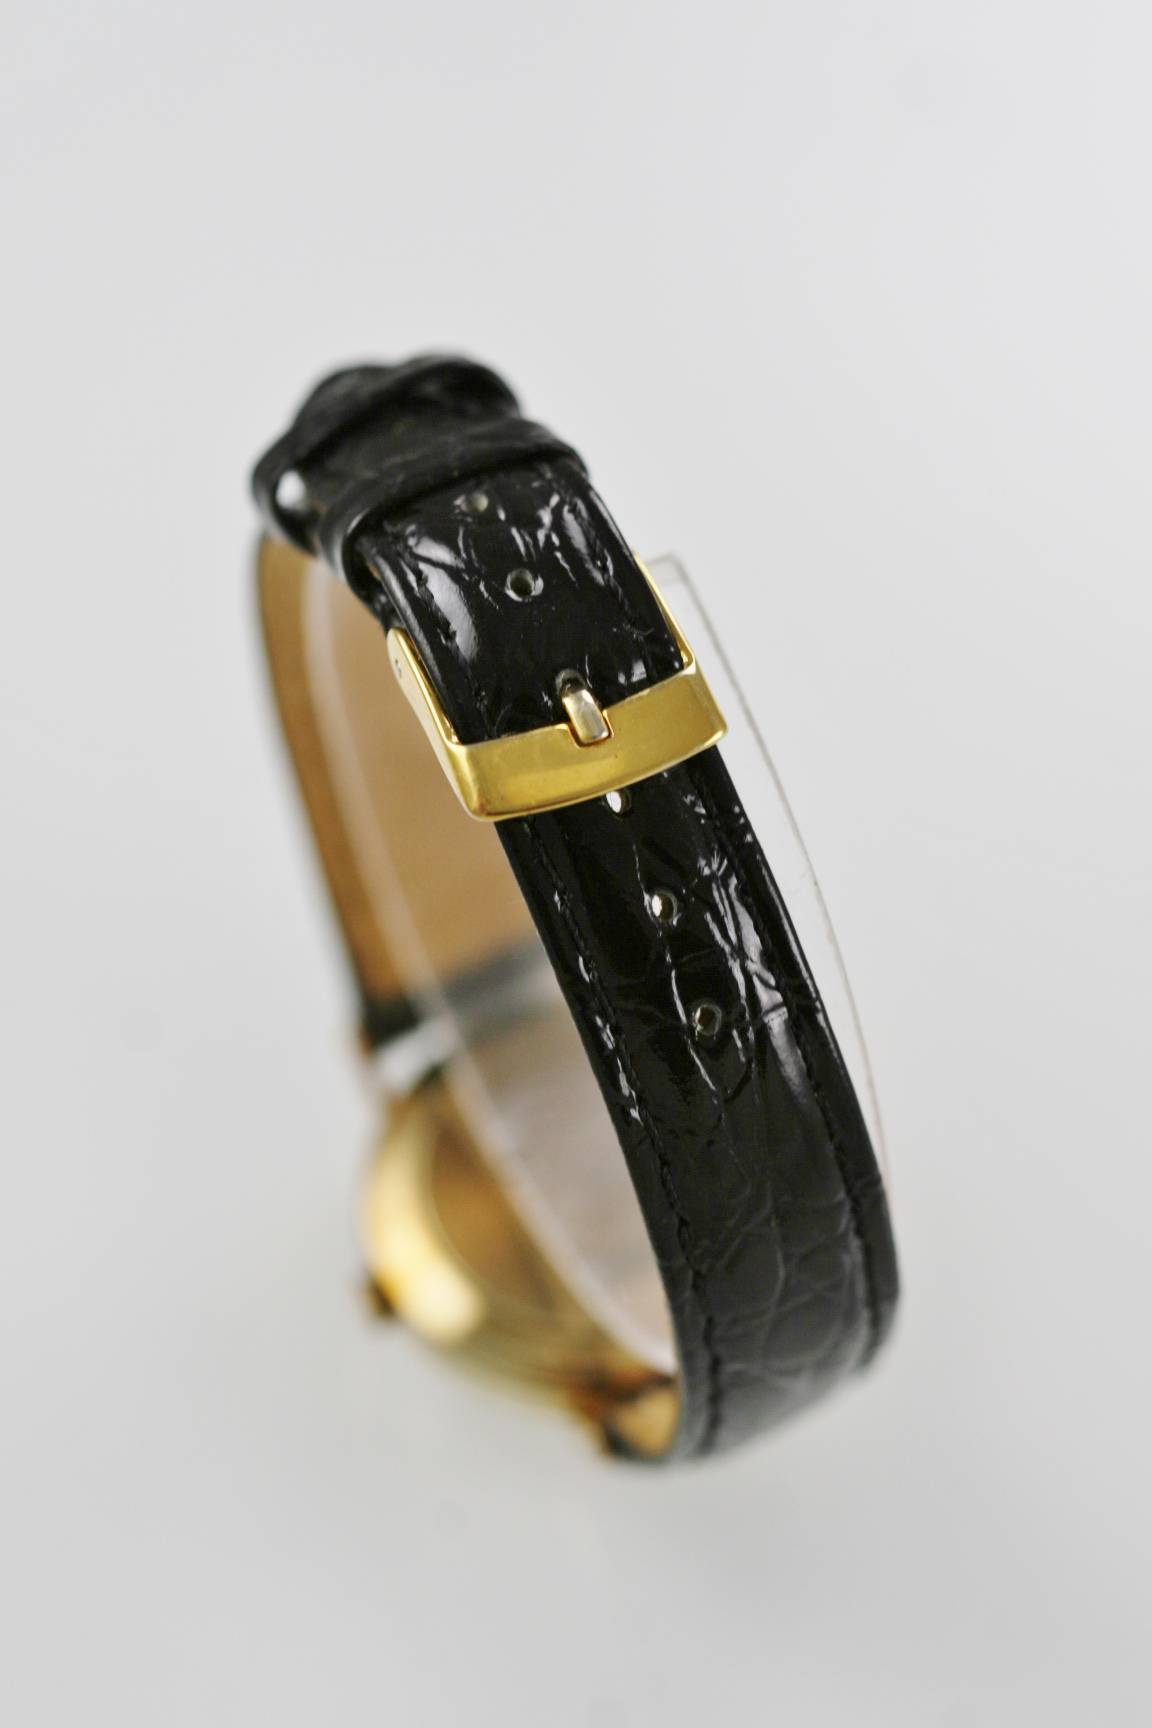 ba5e6fa0c592 Vicence Swiss Watch Women 14K Gold .585 Milor Italy Date Black Leather WR  Quartz